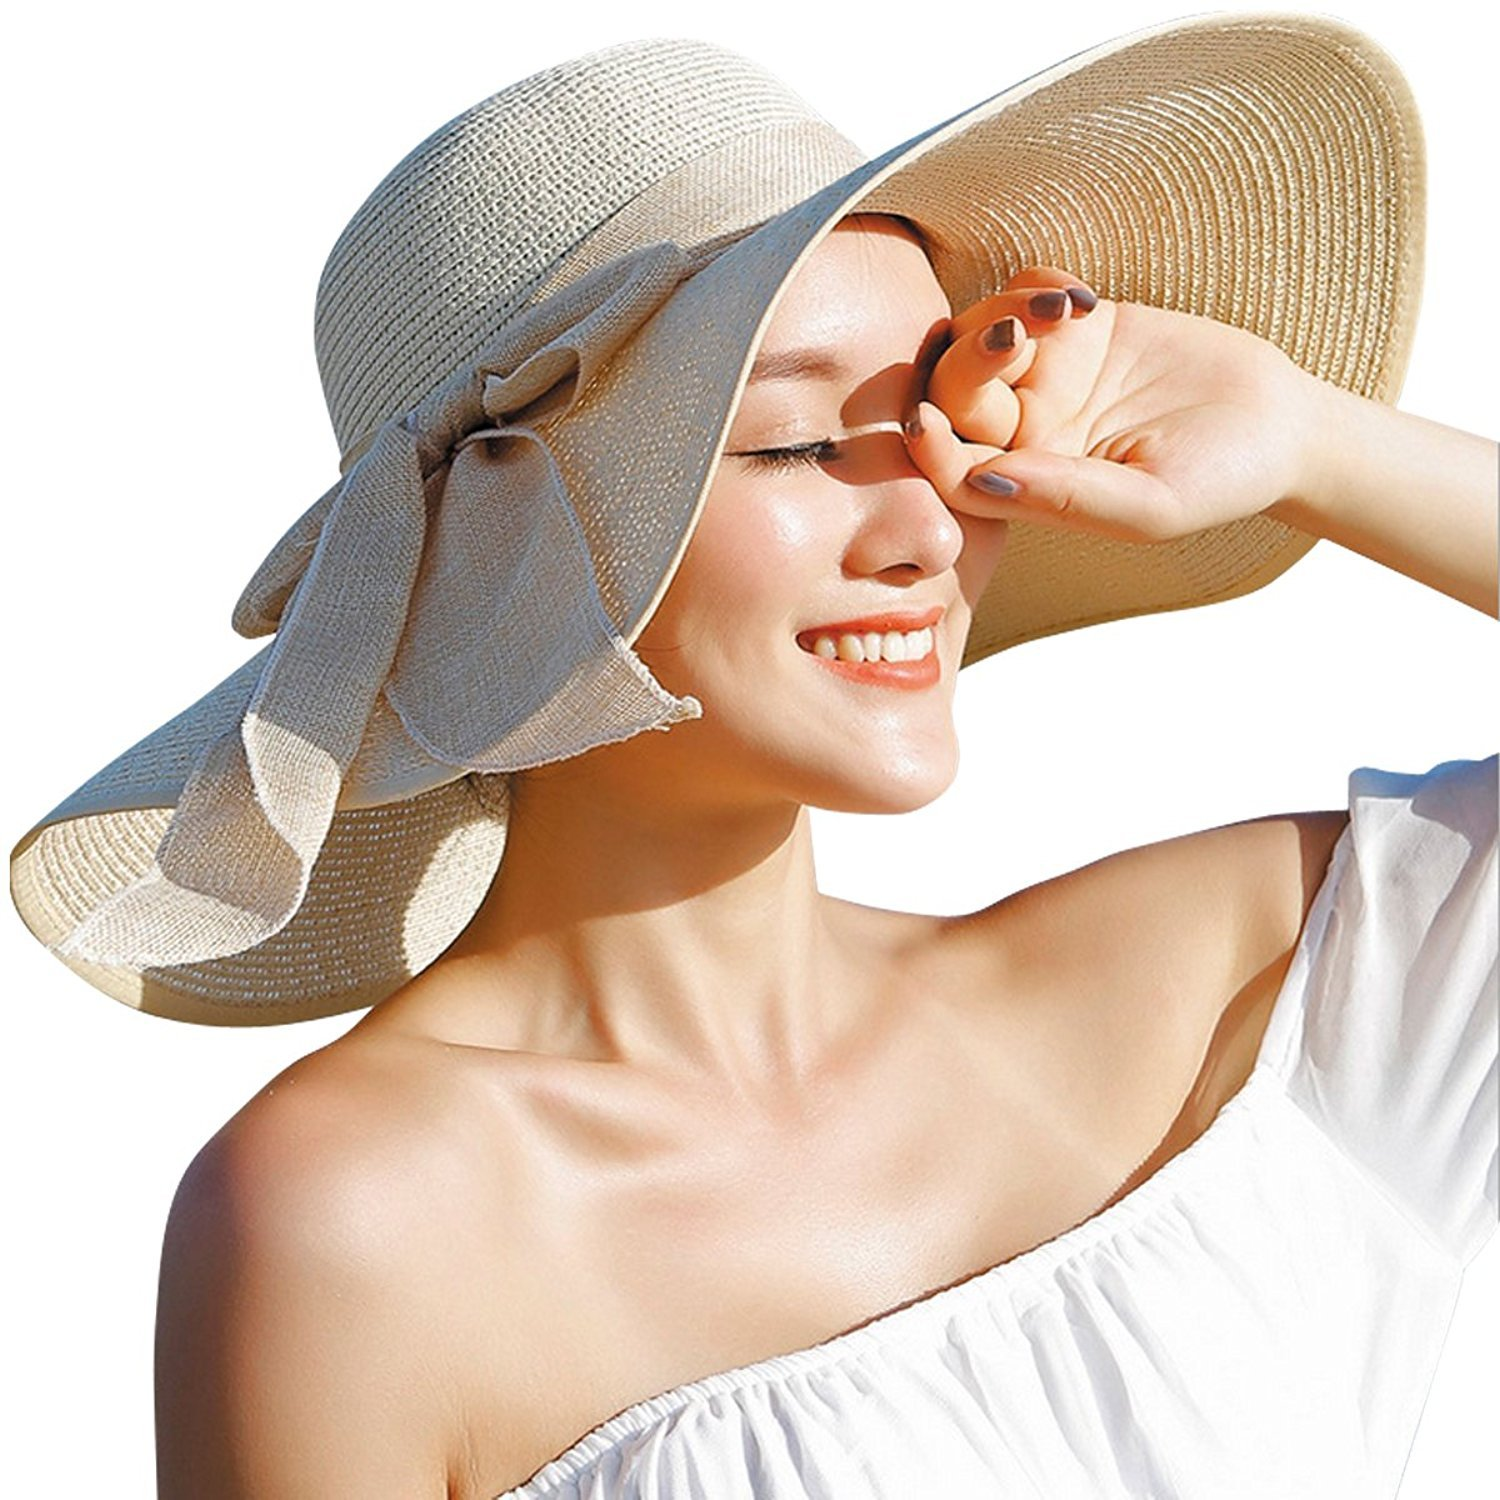 Summer Floppy Sun Hats for Women  Top quality skin-friendly Straw material.  Soft comfortable and breathable design. New Fashion UV Protection Summer Sun  ... f188f5e1bd0e